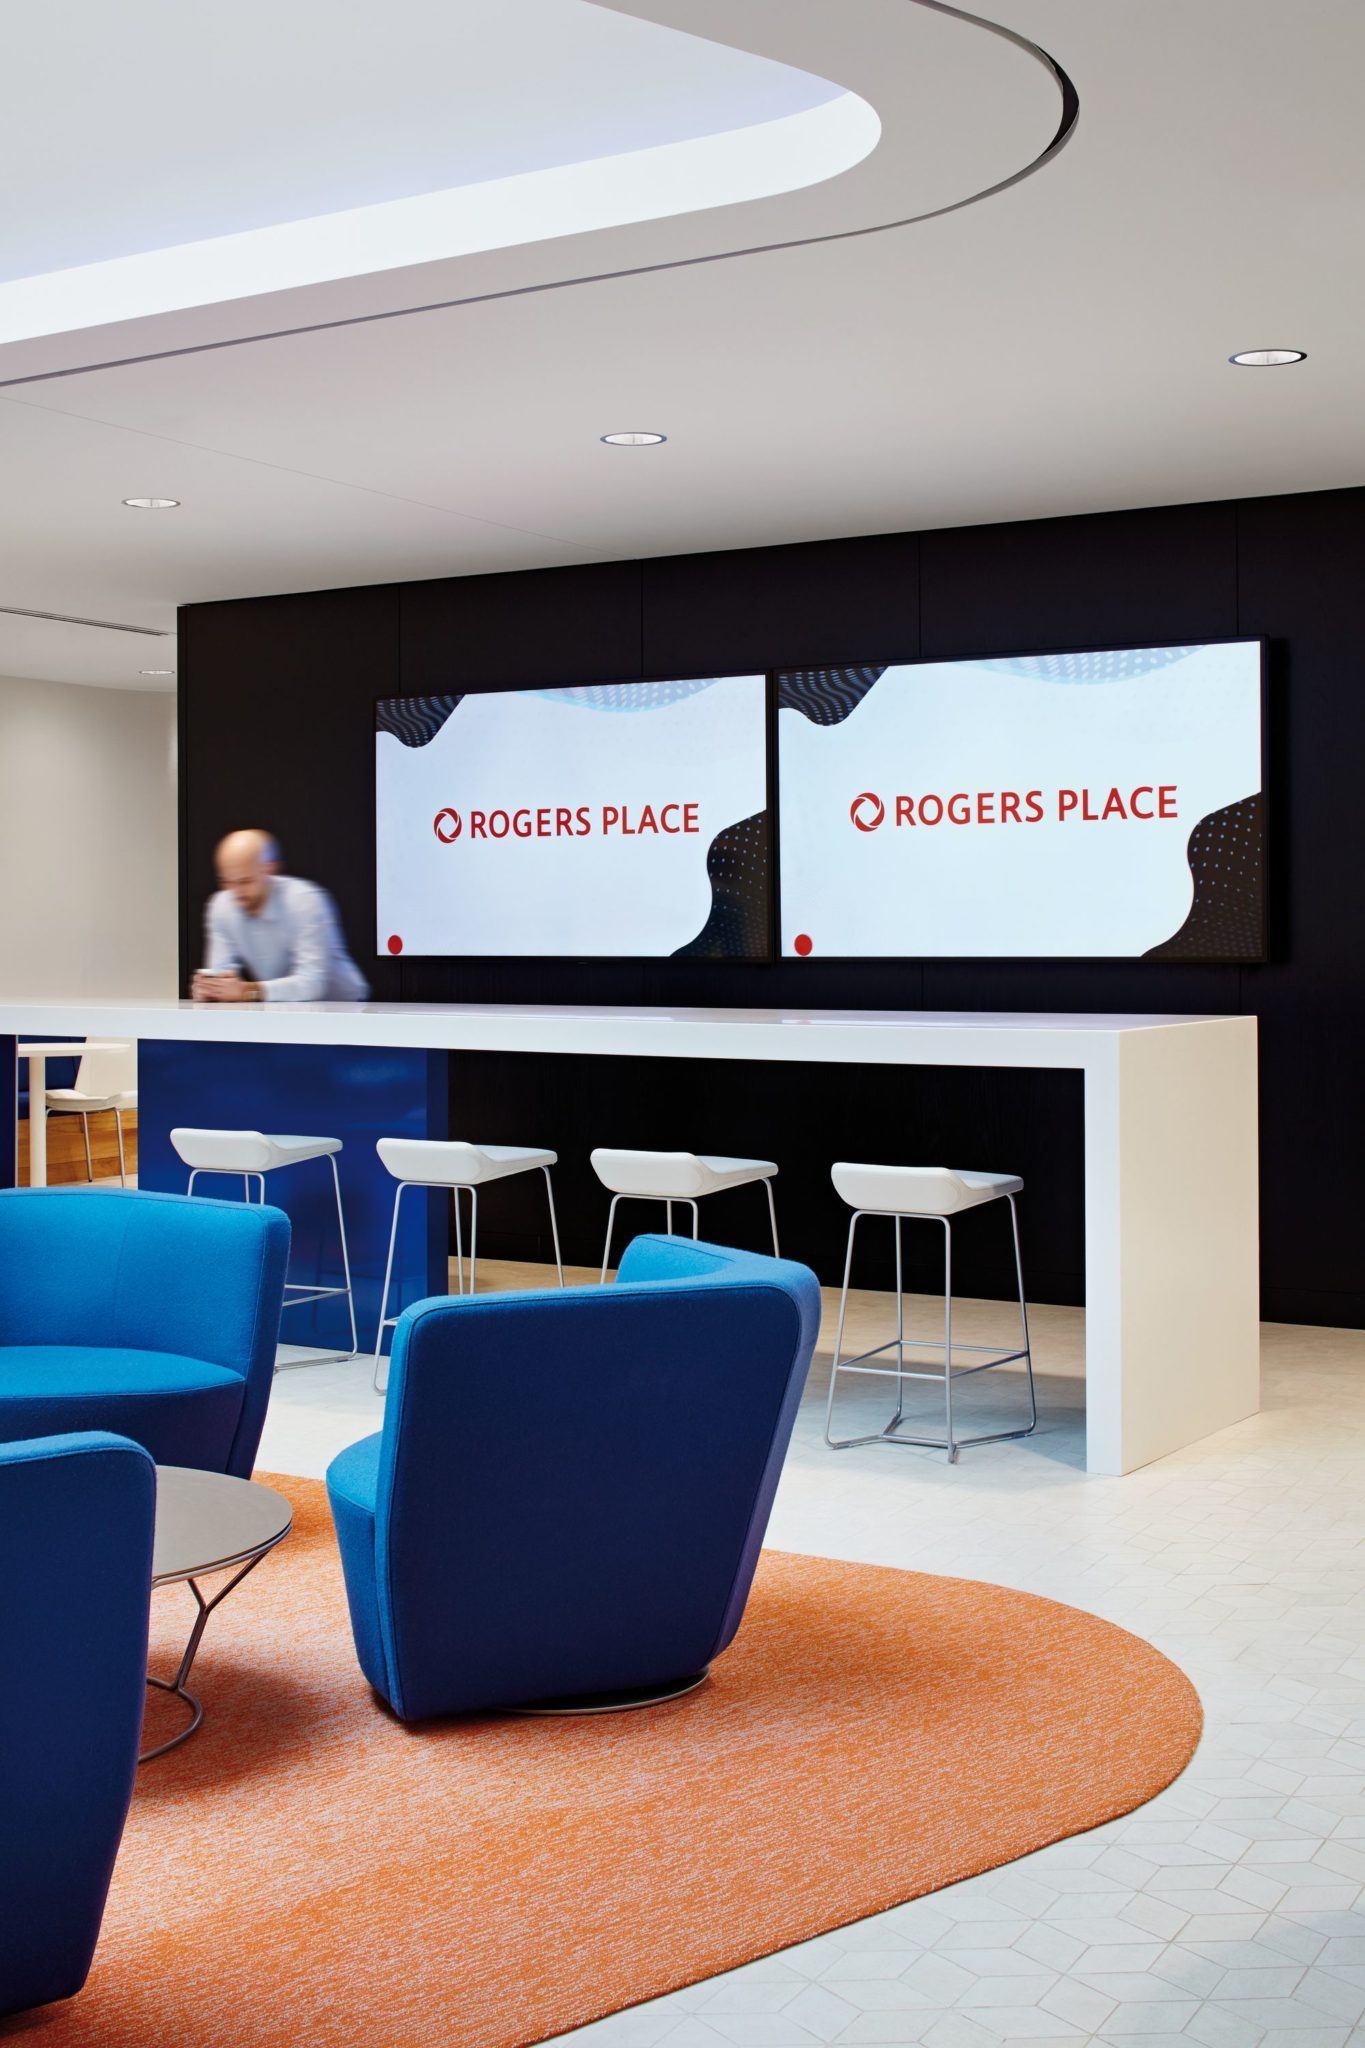 Breakfast bar and lunch room of the OEG headquarters